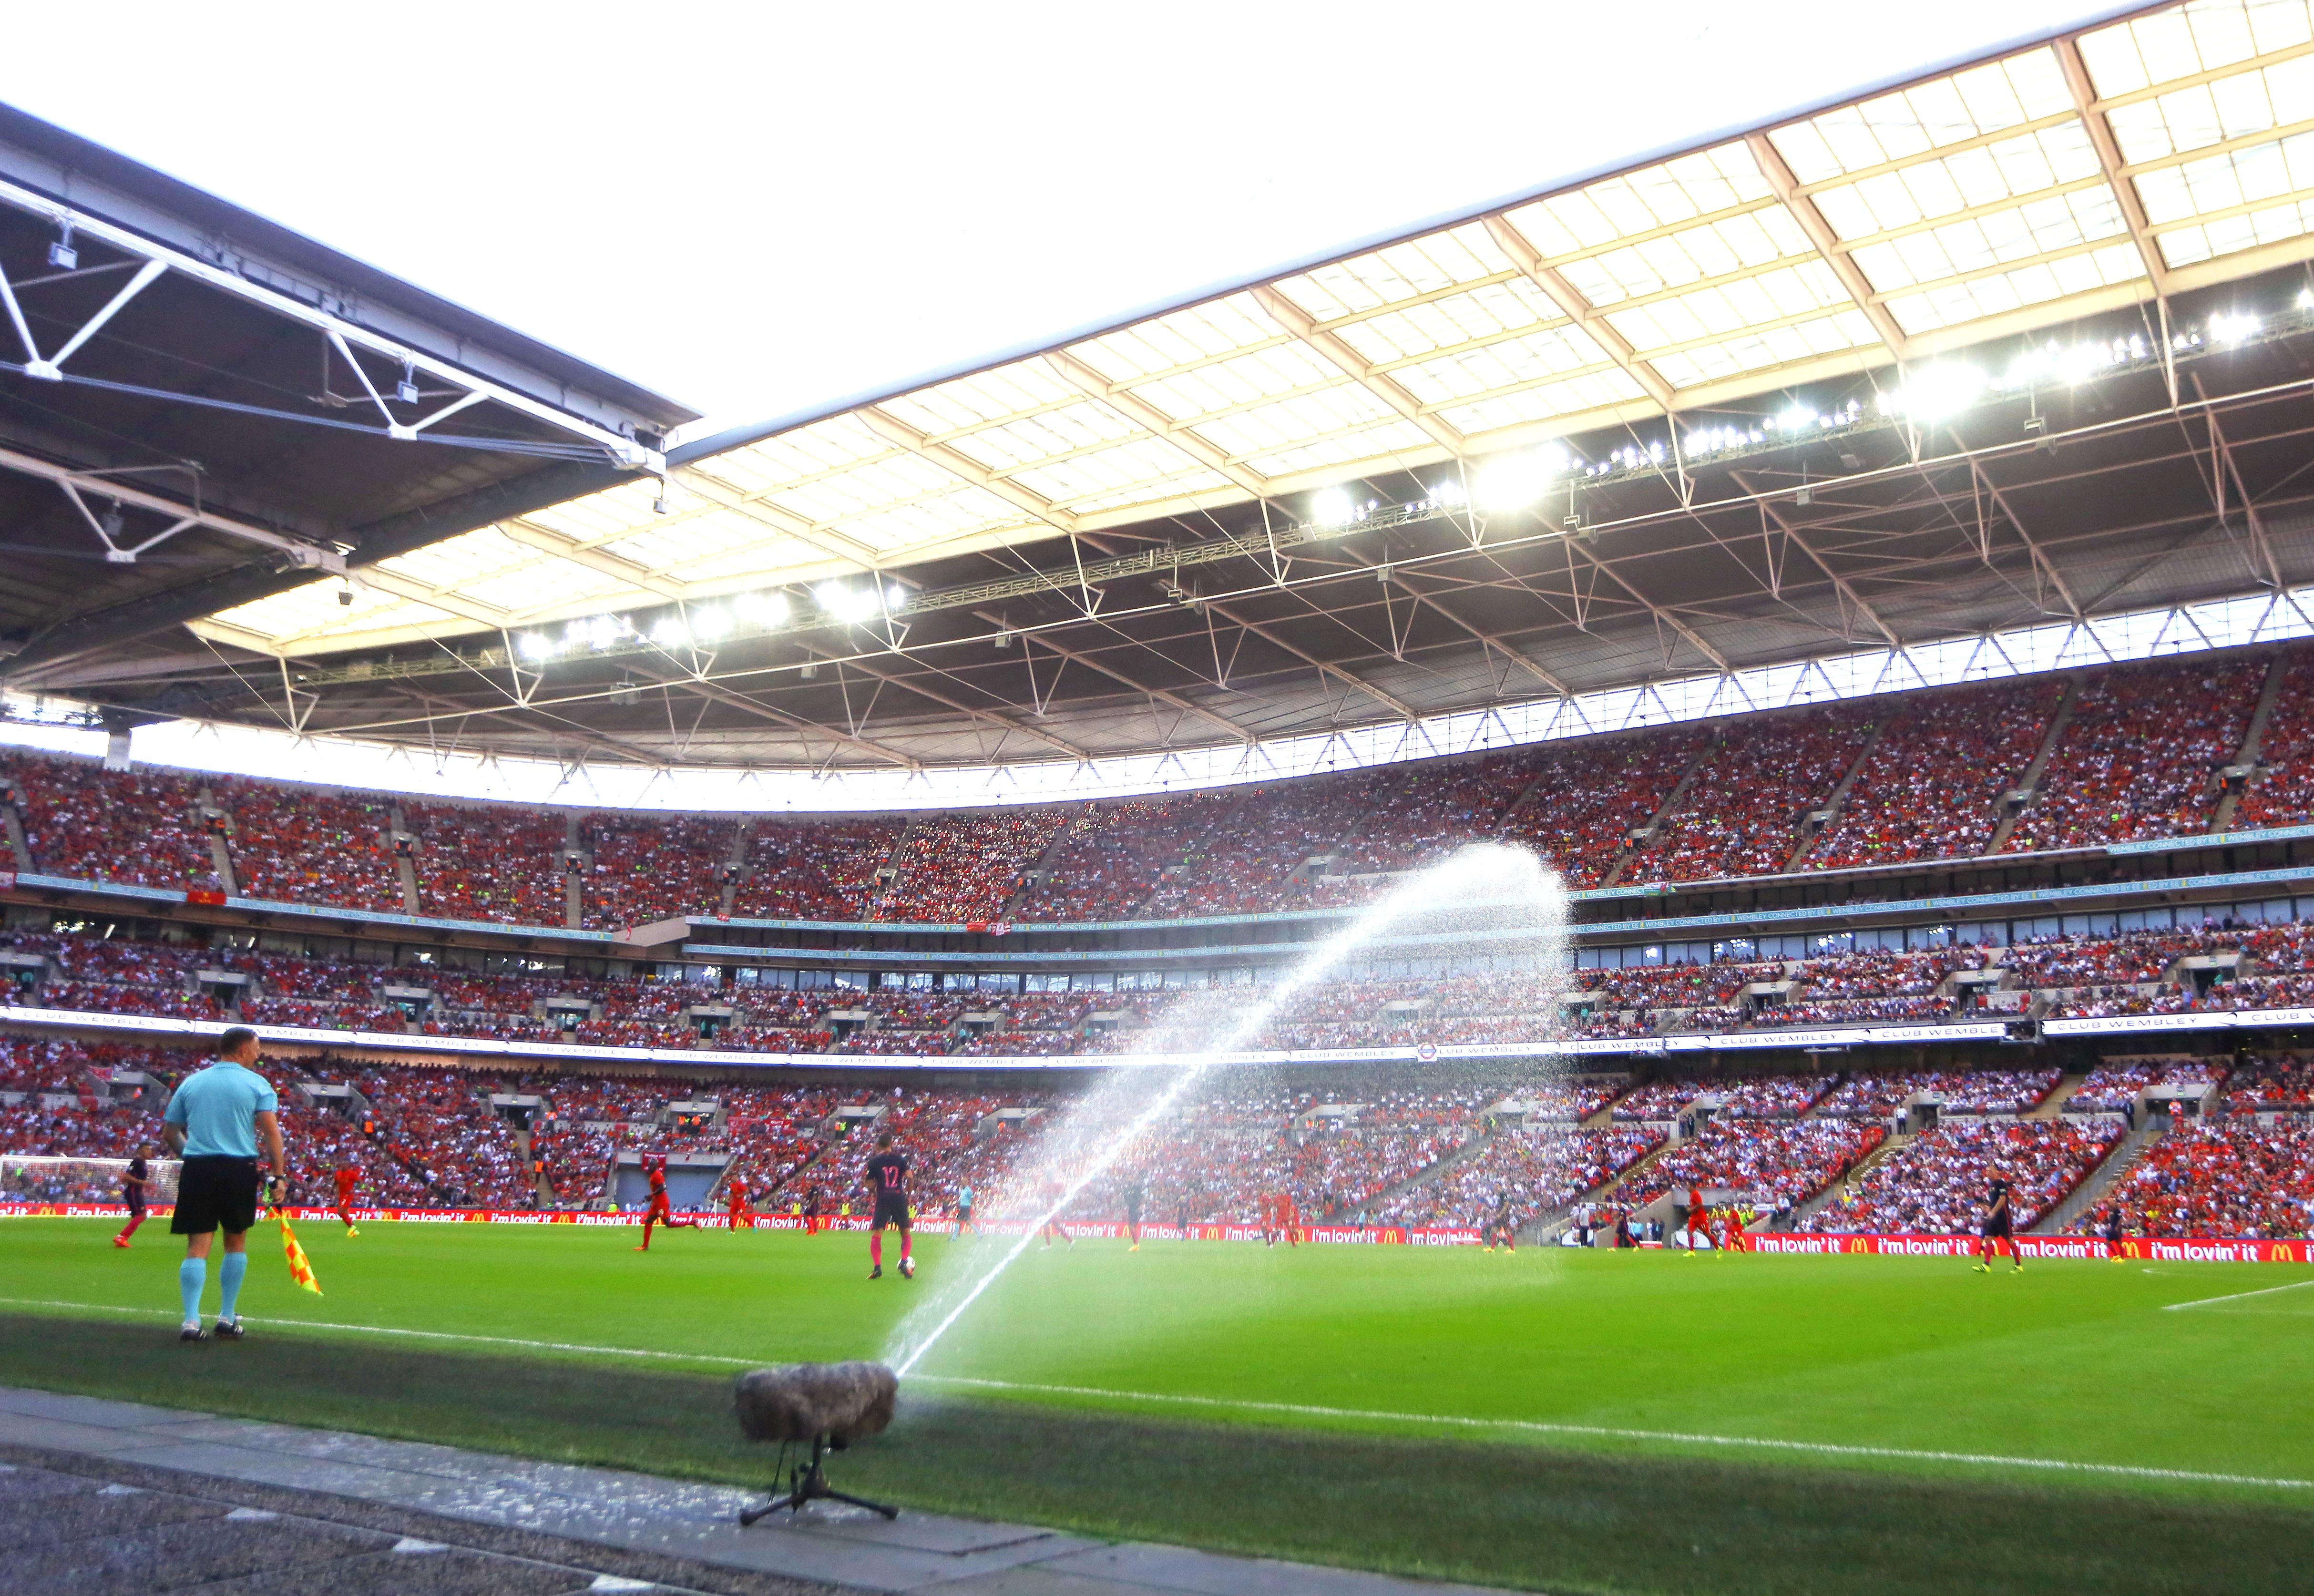 The football season may be delayed due to the UK heatwave